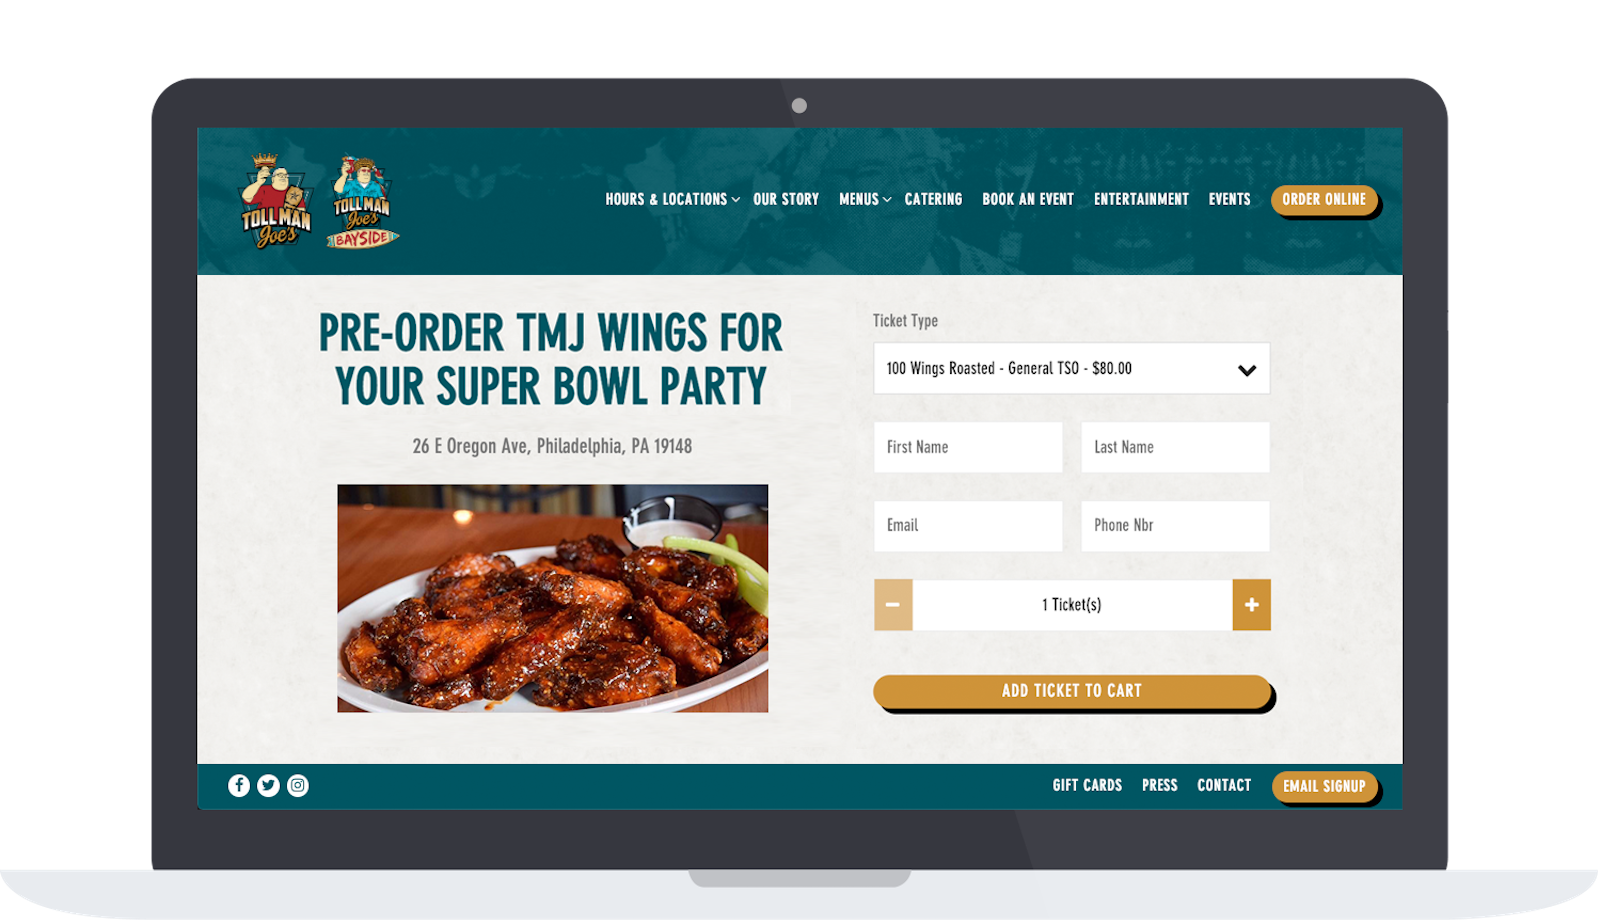 Toll Man Joe's Super Bowl wing orders on their website